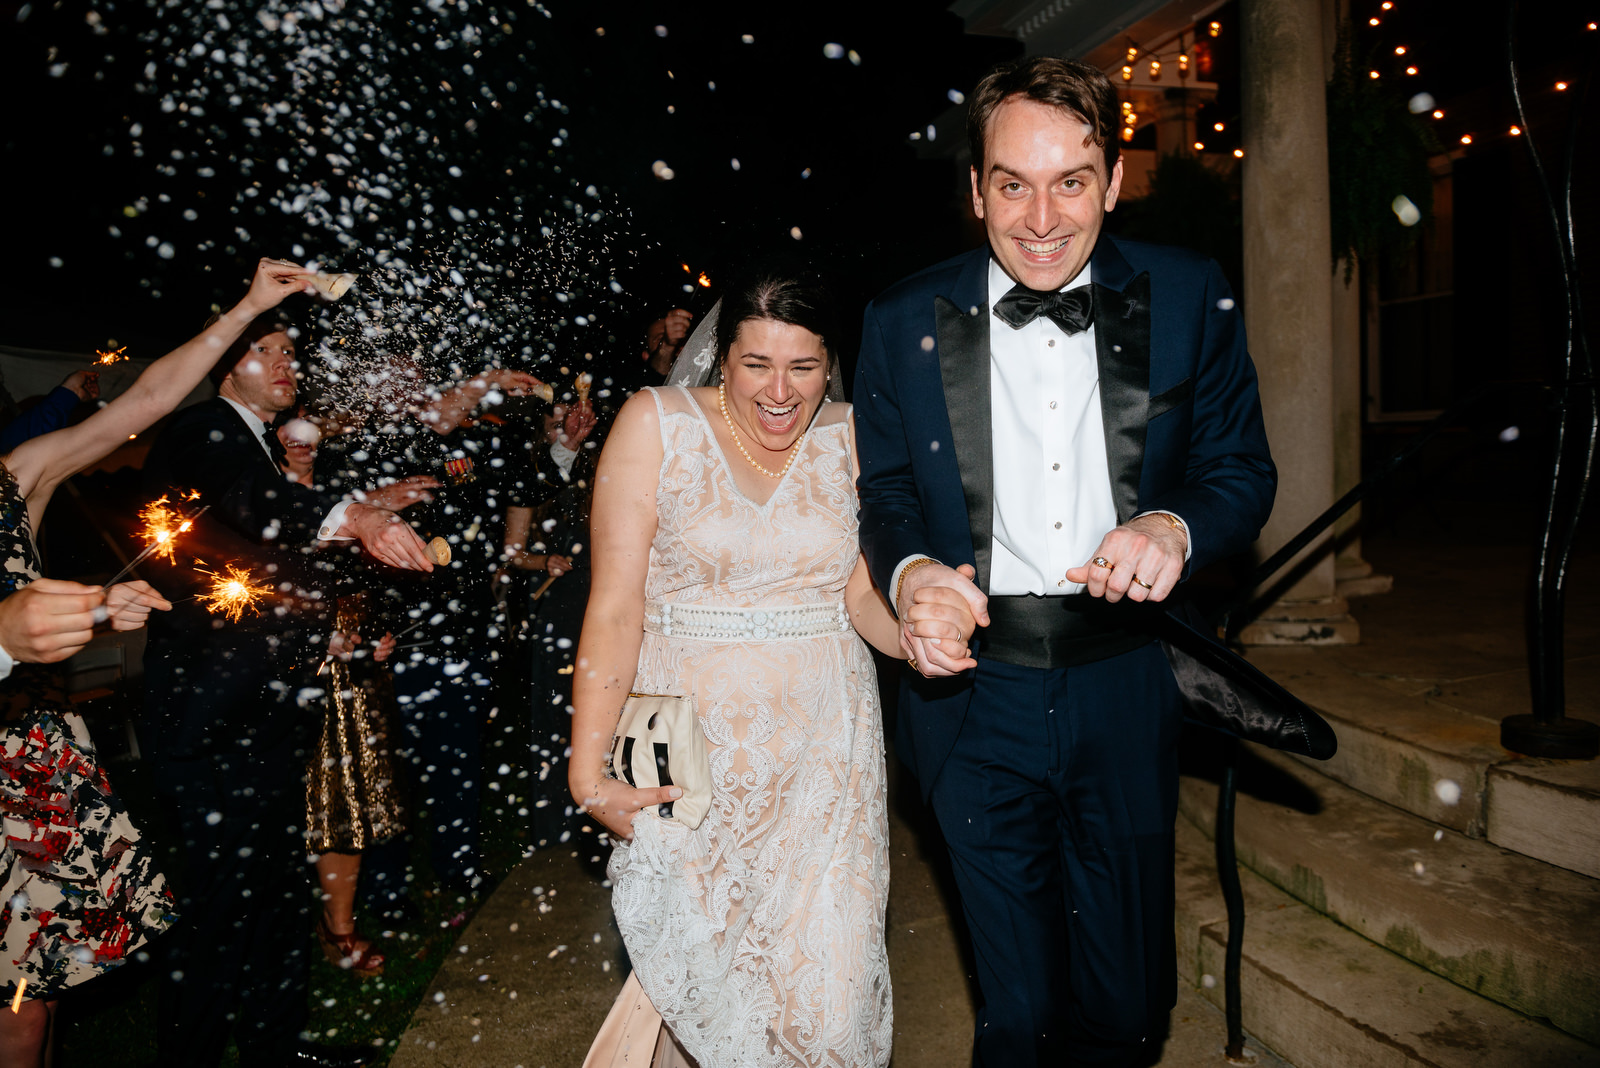 reception sendoff bird seed sparkler exit holly hill inn wedding lexington ky